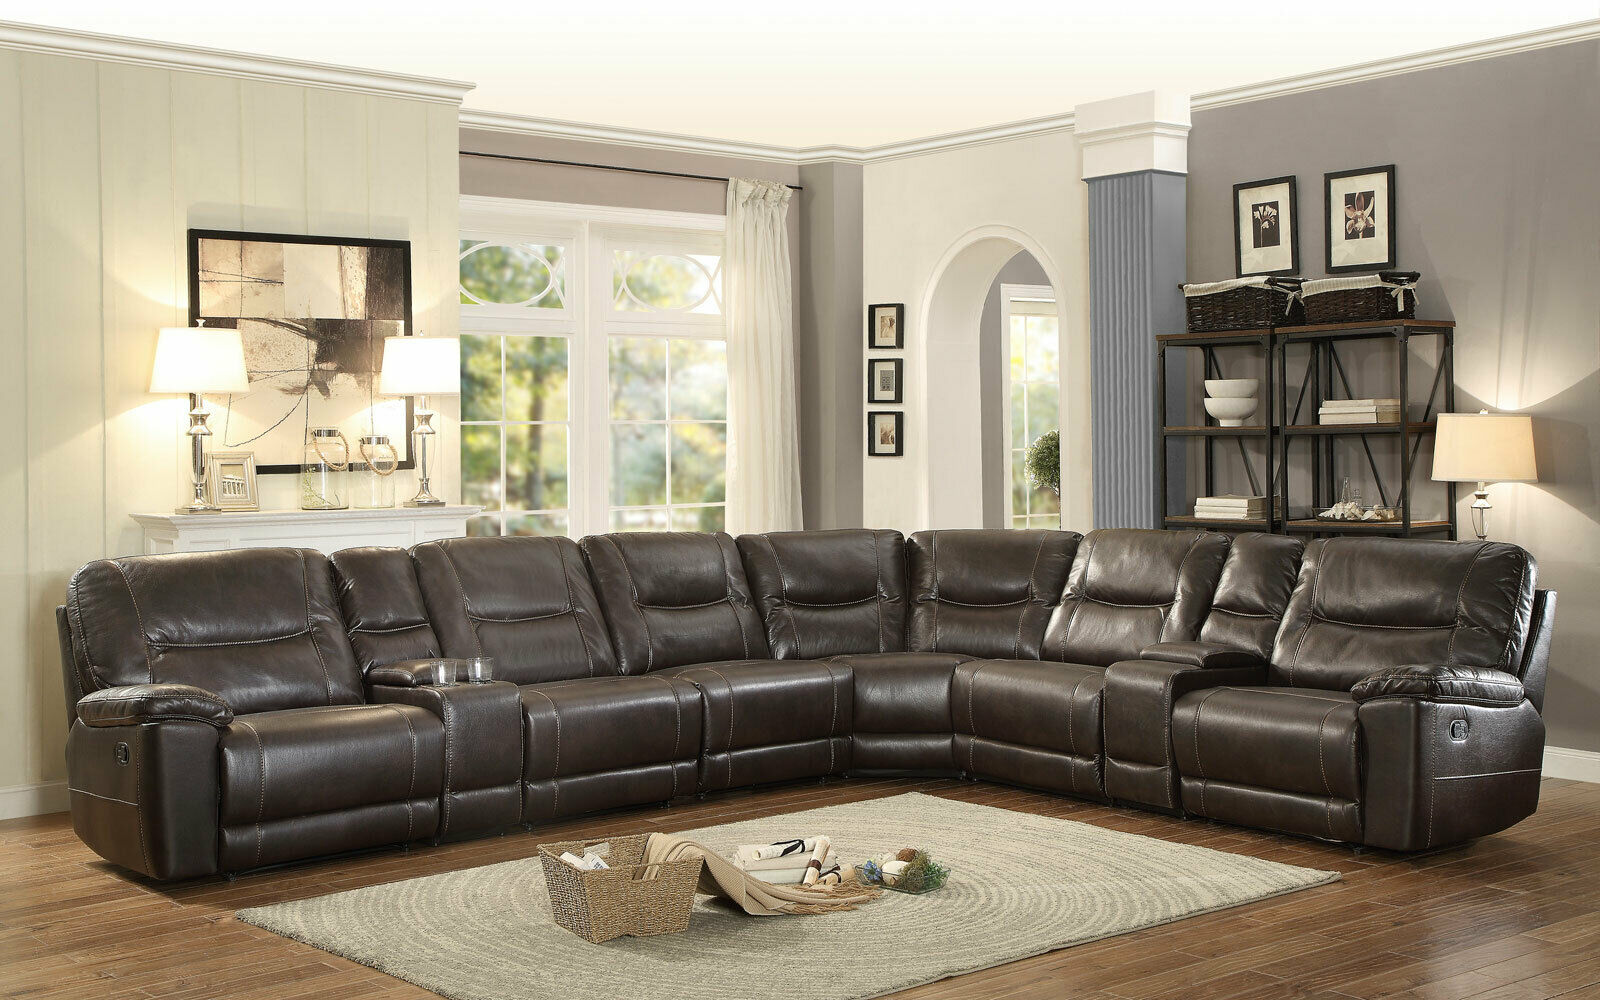 Brown Faux Leather Reclining Sofa